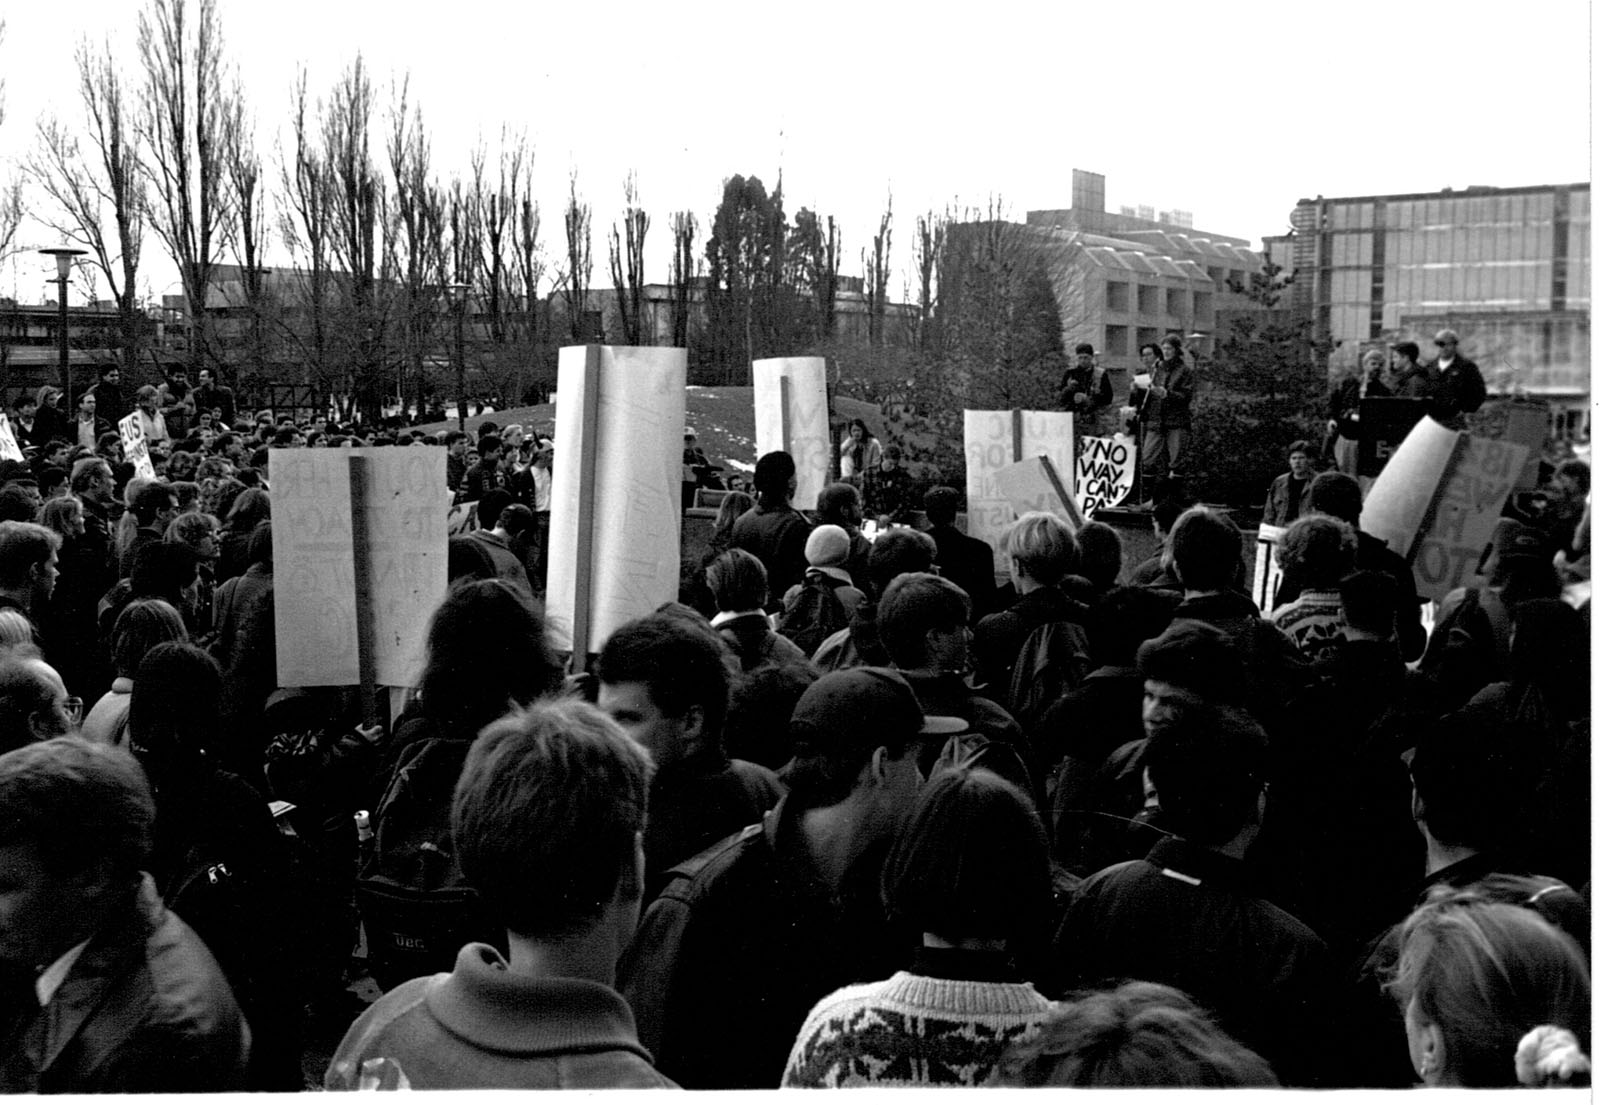 Students protest tuition hikes on campus in an undated photo.